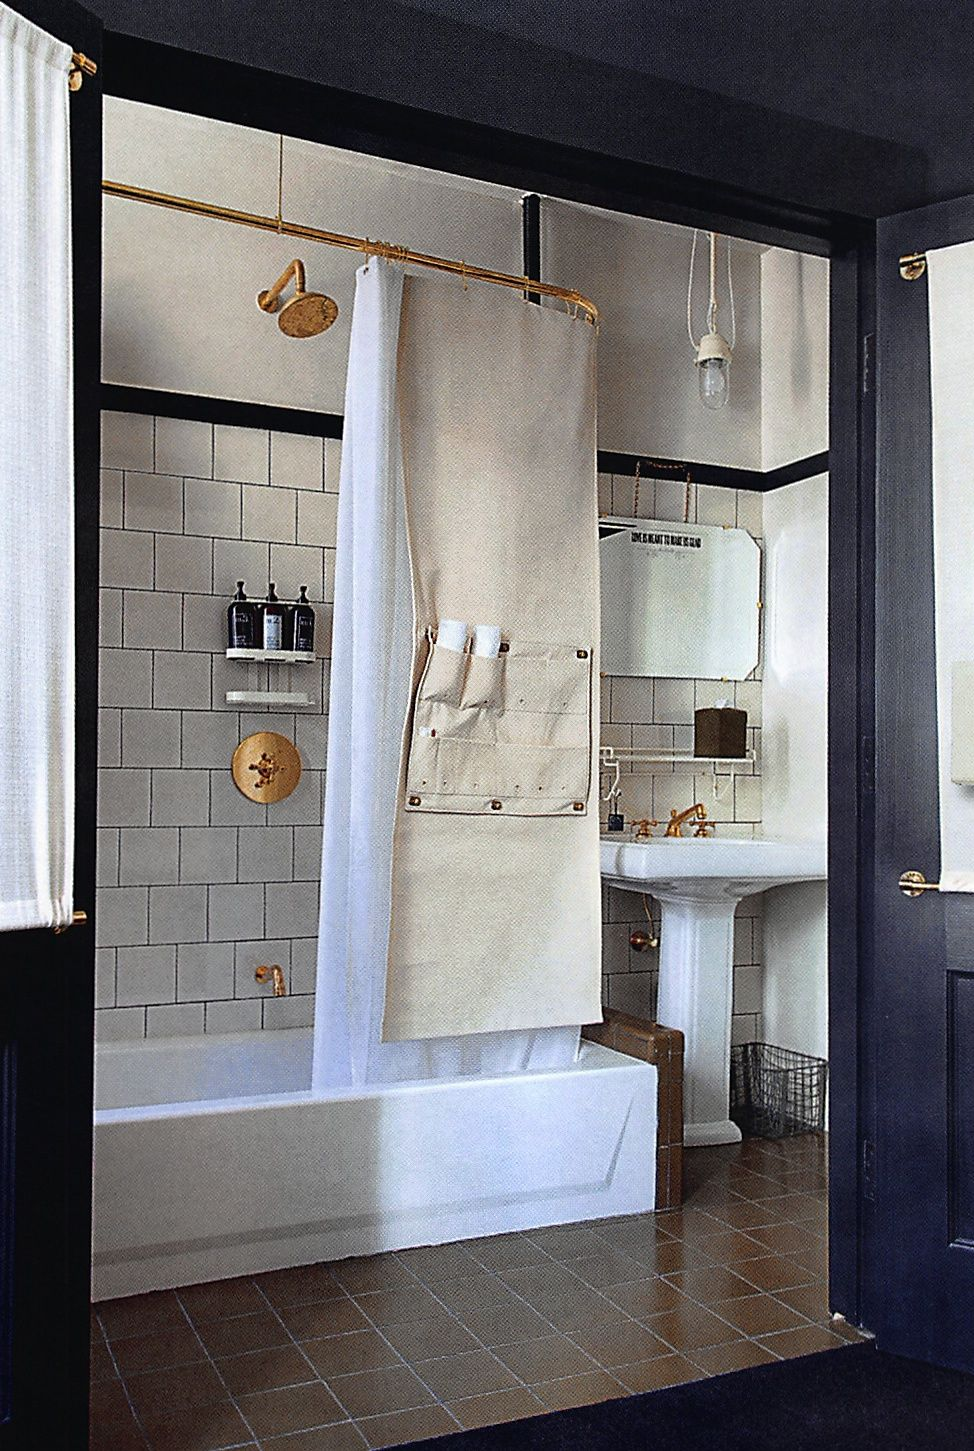 Copper Fittings At Ace Hotel New York Bathroom